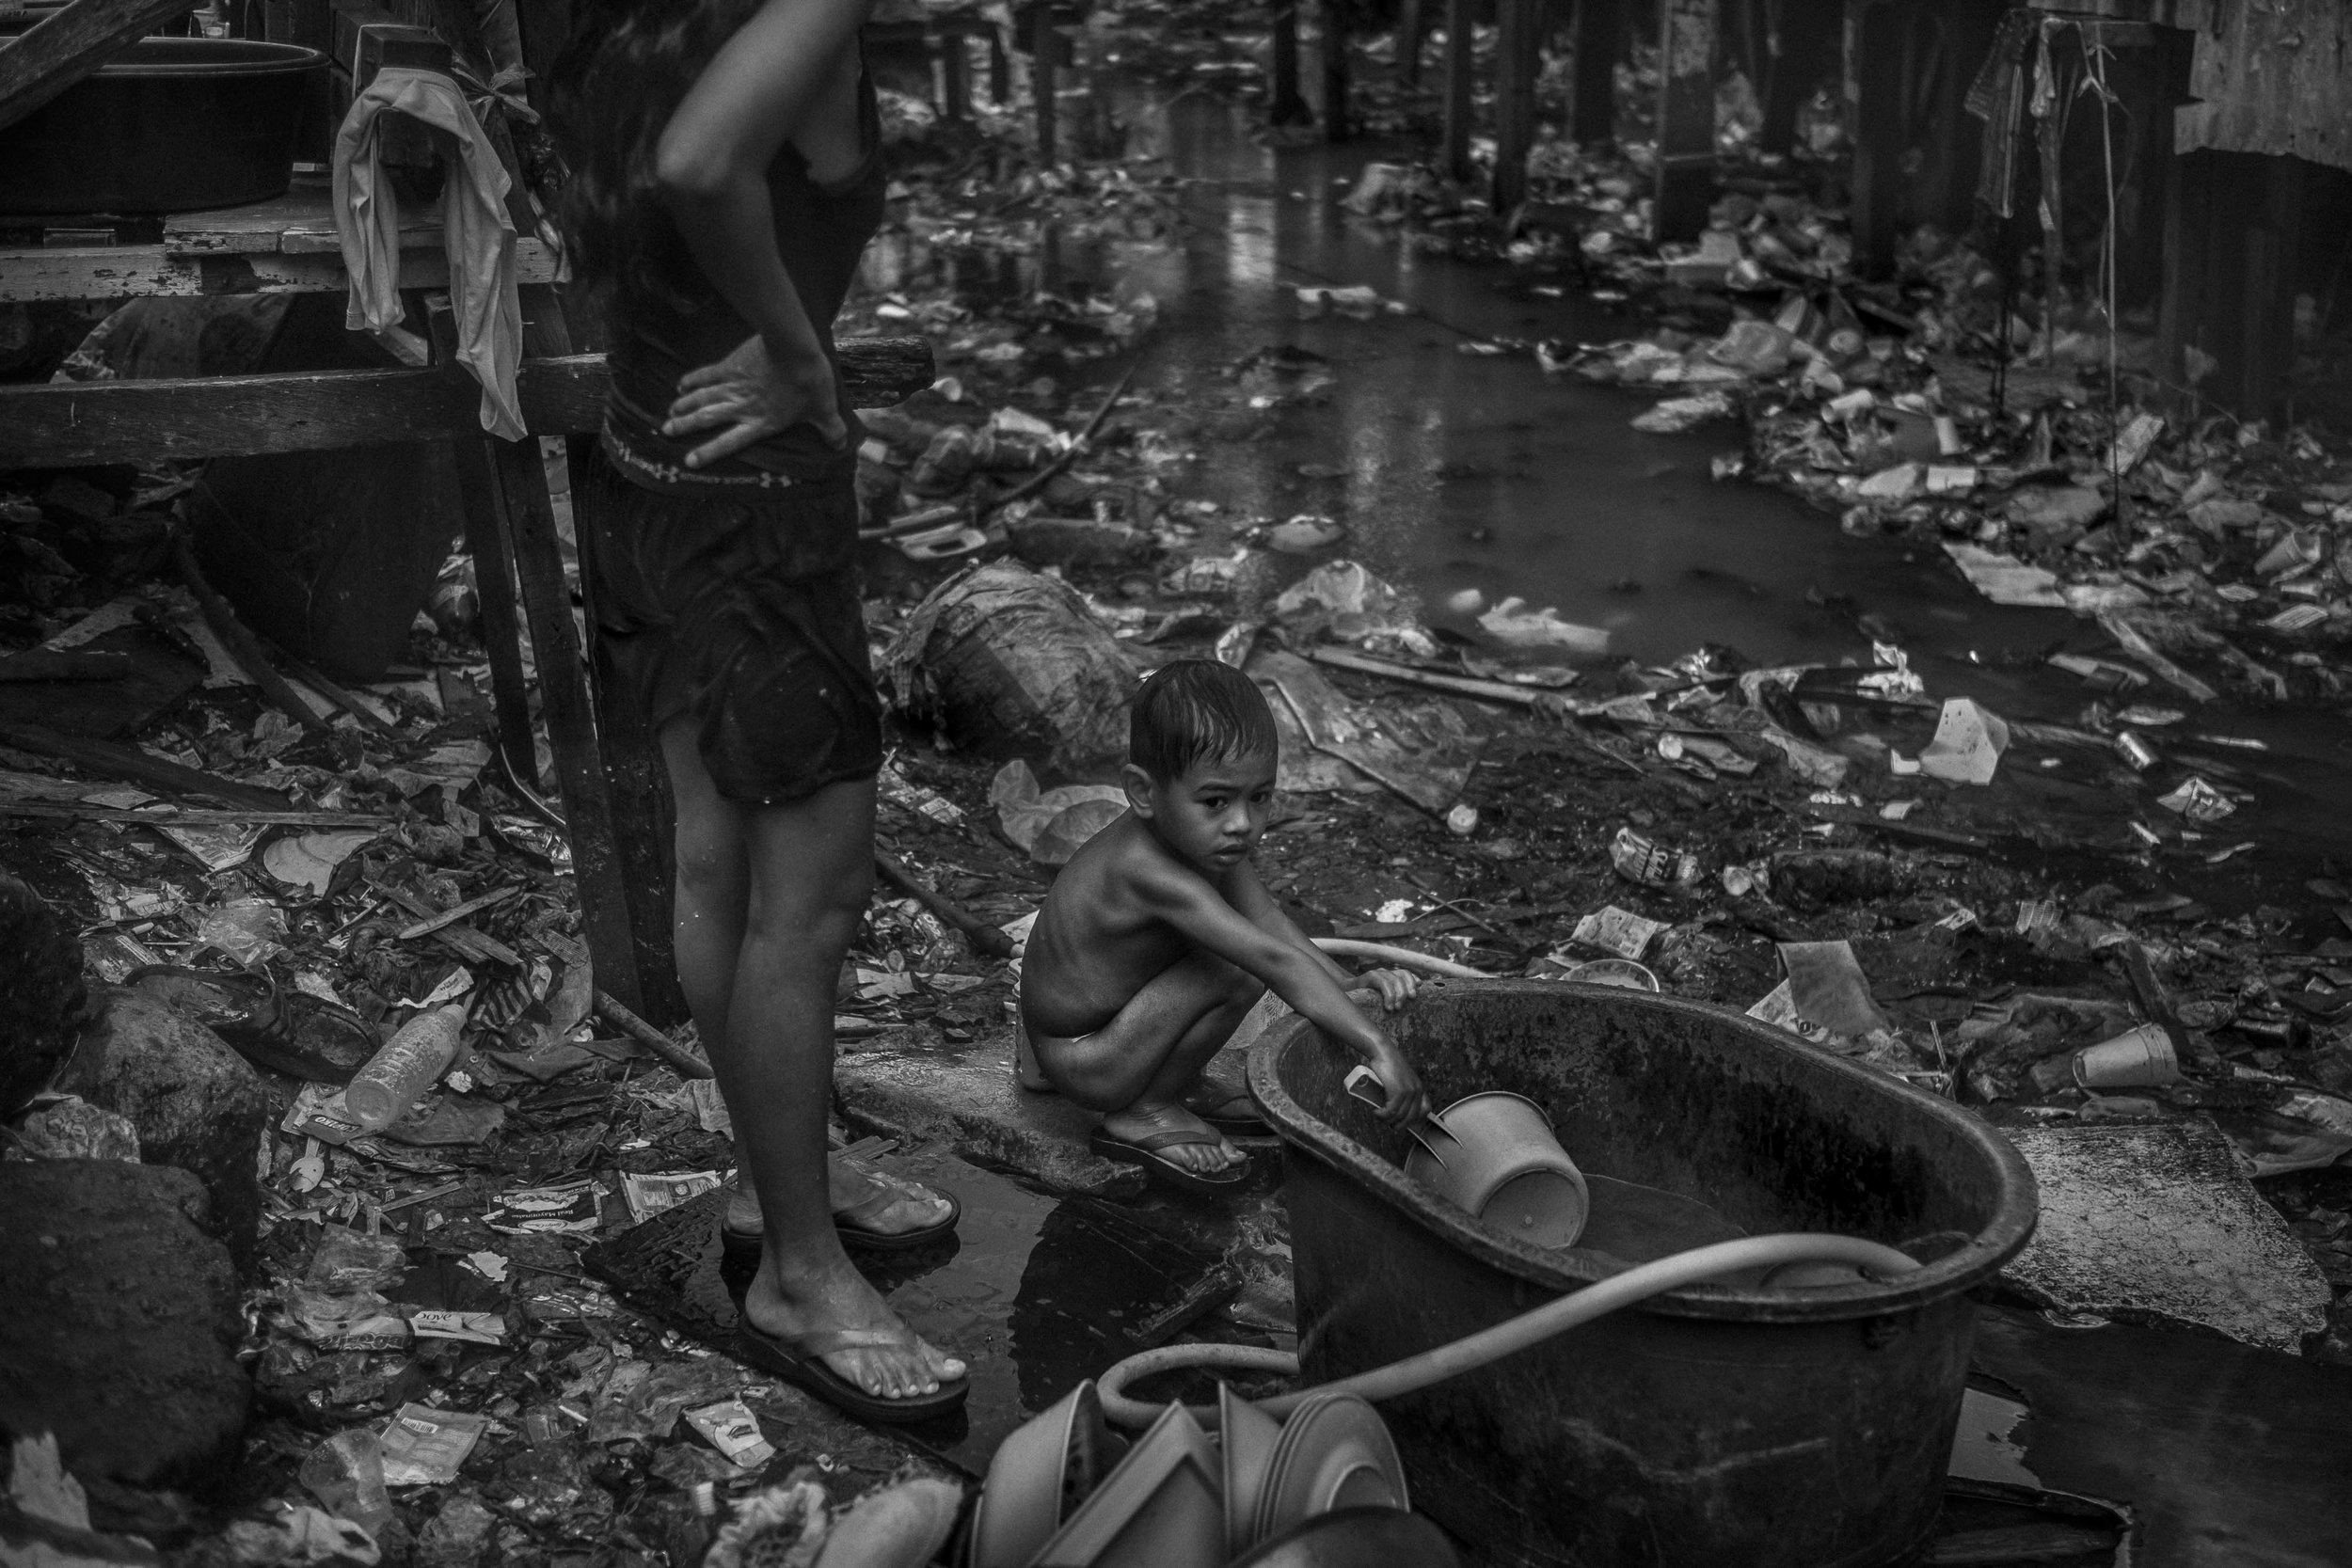 A young boy takes a bath in Estero de Magdalena.